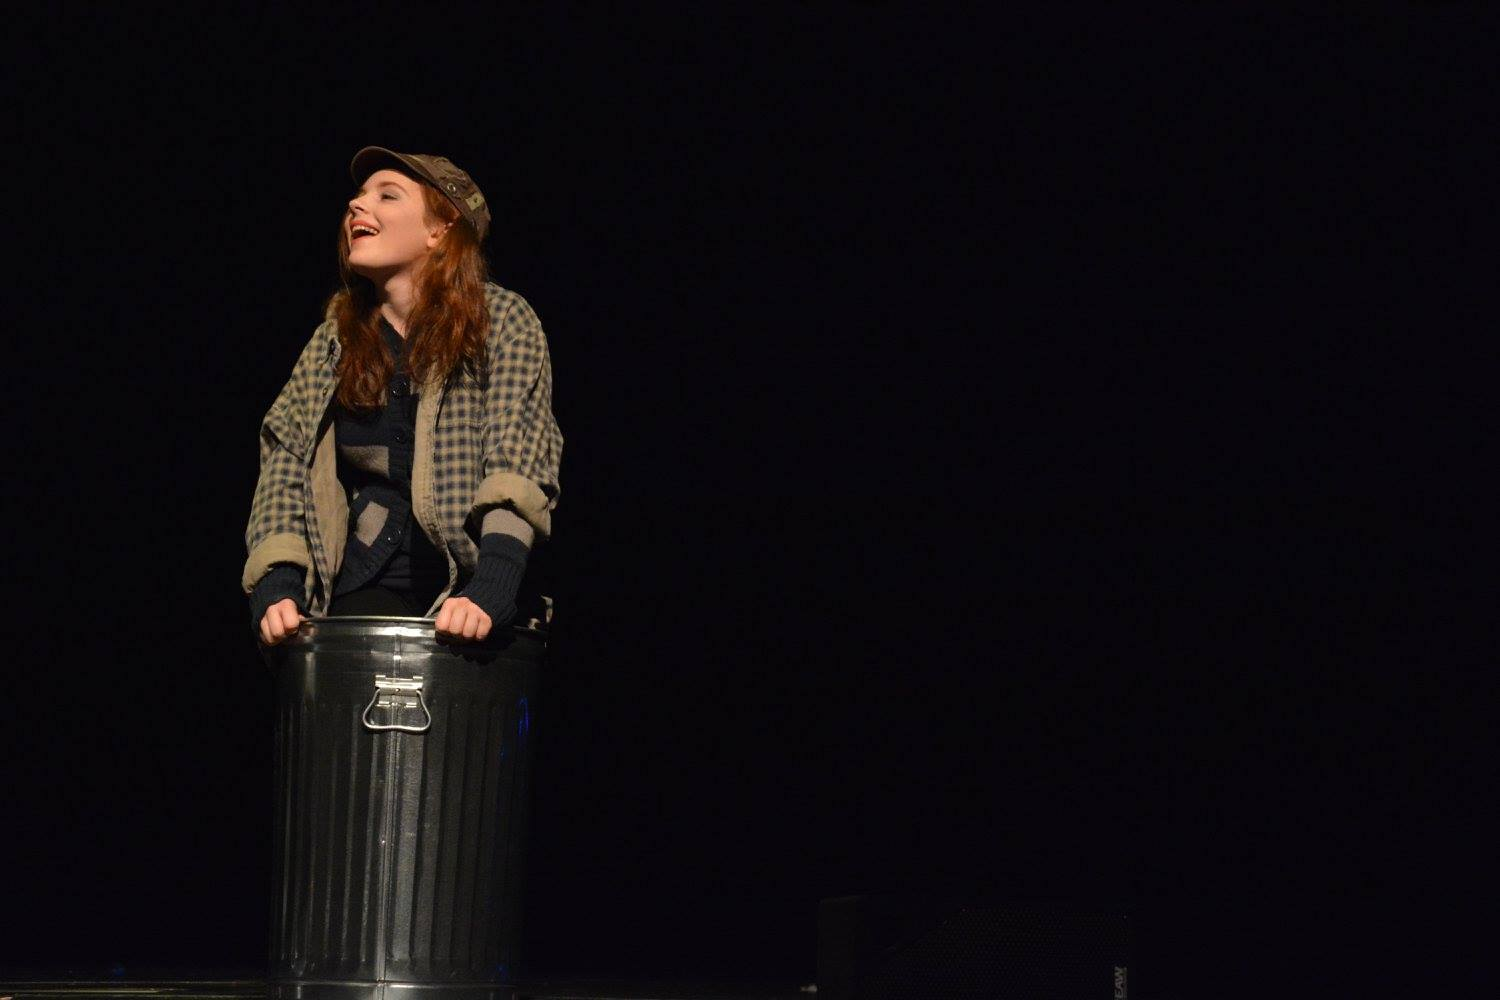 Sophomore+Chloe+Morse+performs+as+an+actress+within+an+oddly+constructed+play+in+the+One+Acts+on+Jan.+27.+